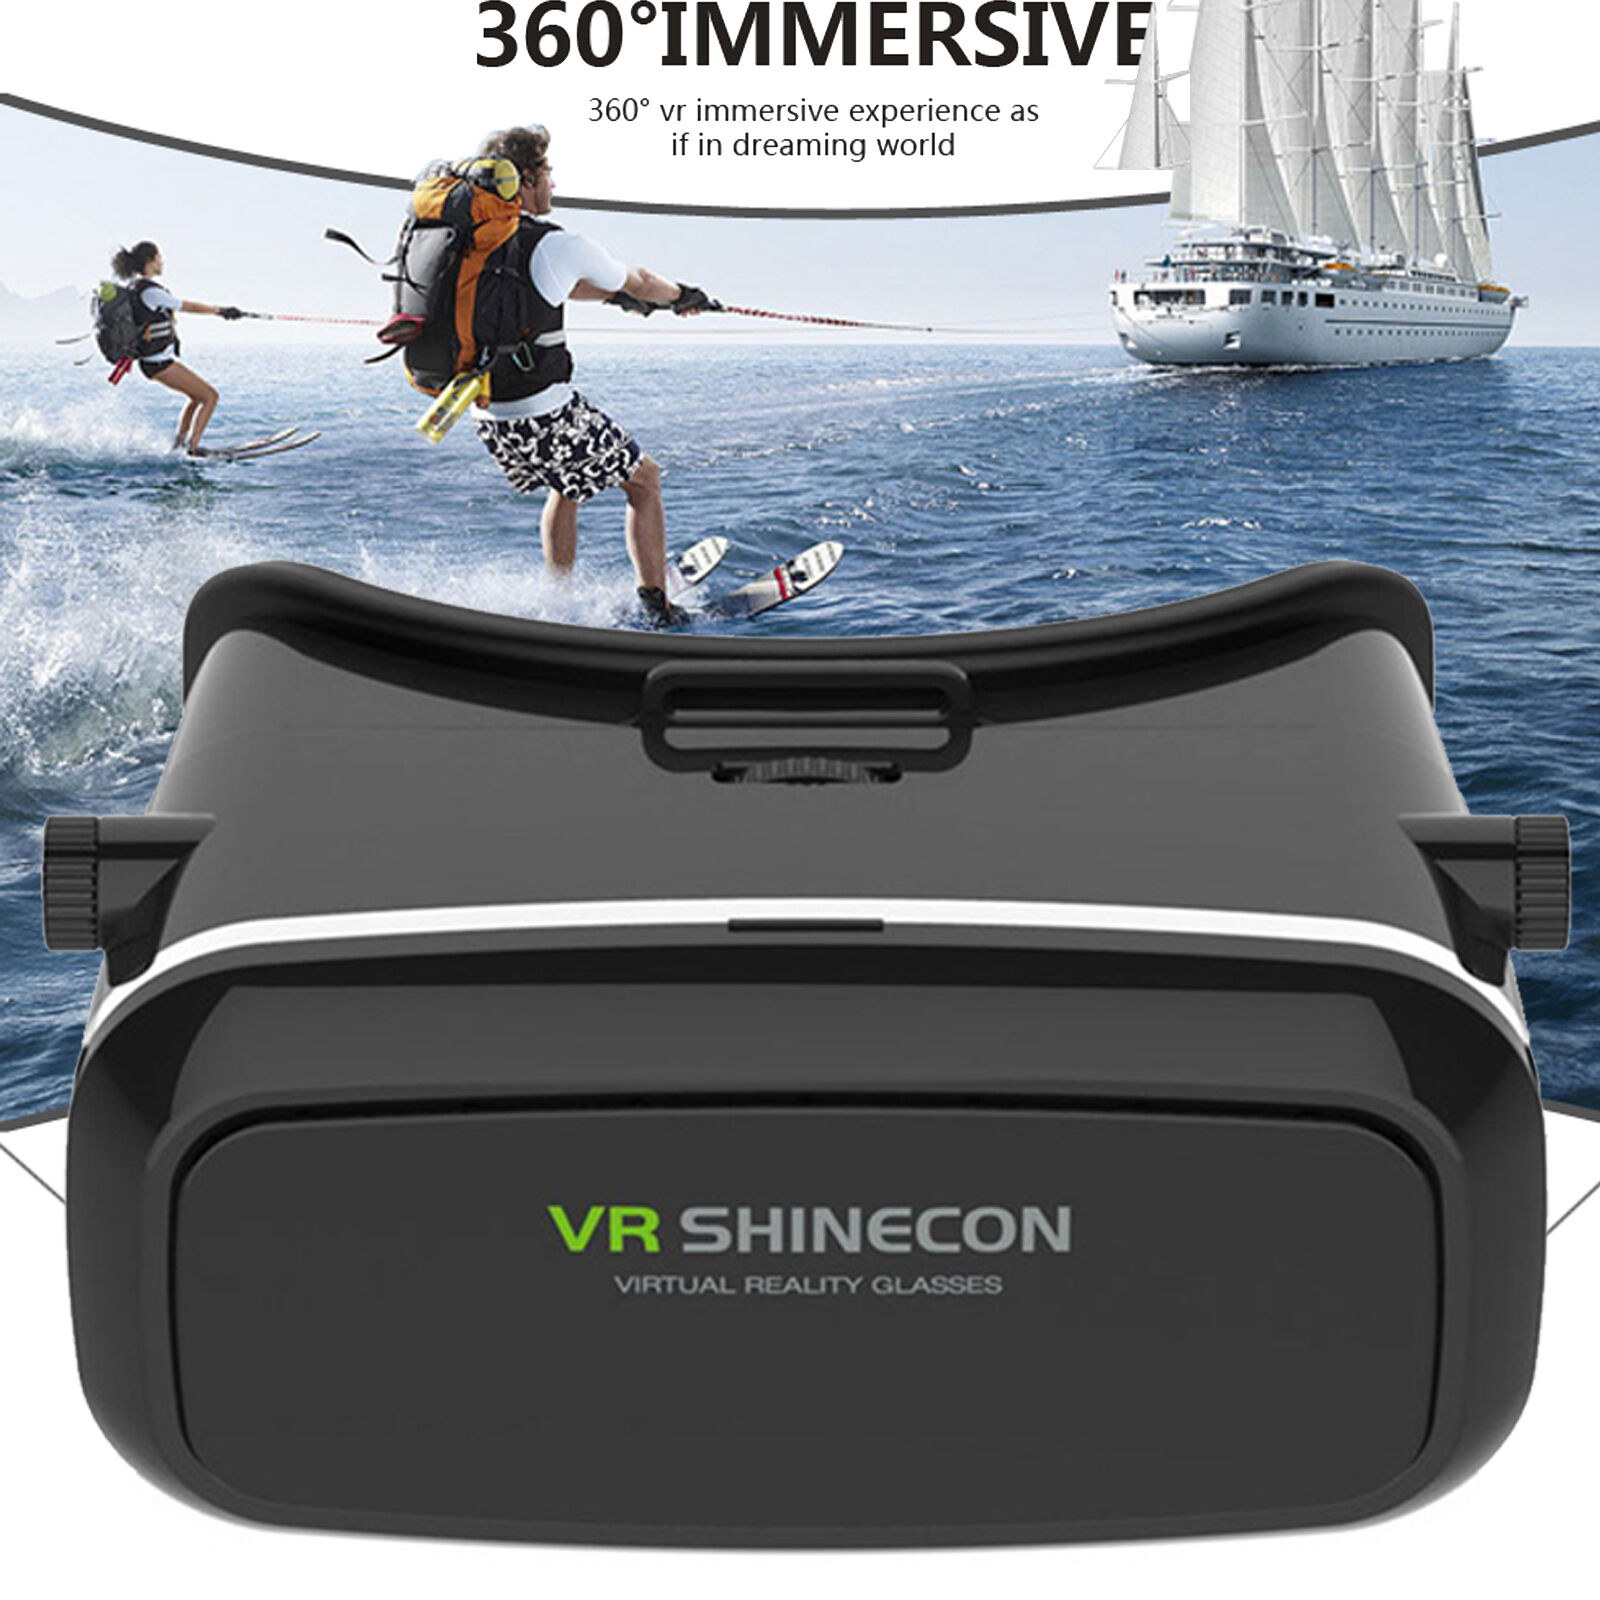 Movie Visor 3D VR Virtual Reality Glasses For Samsung Galaxy S9 S8 S7 Edge Note8